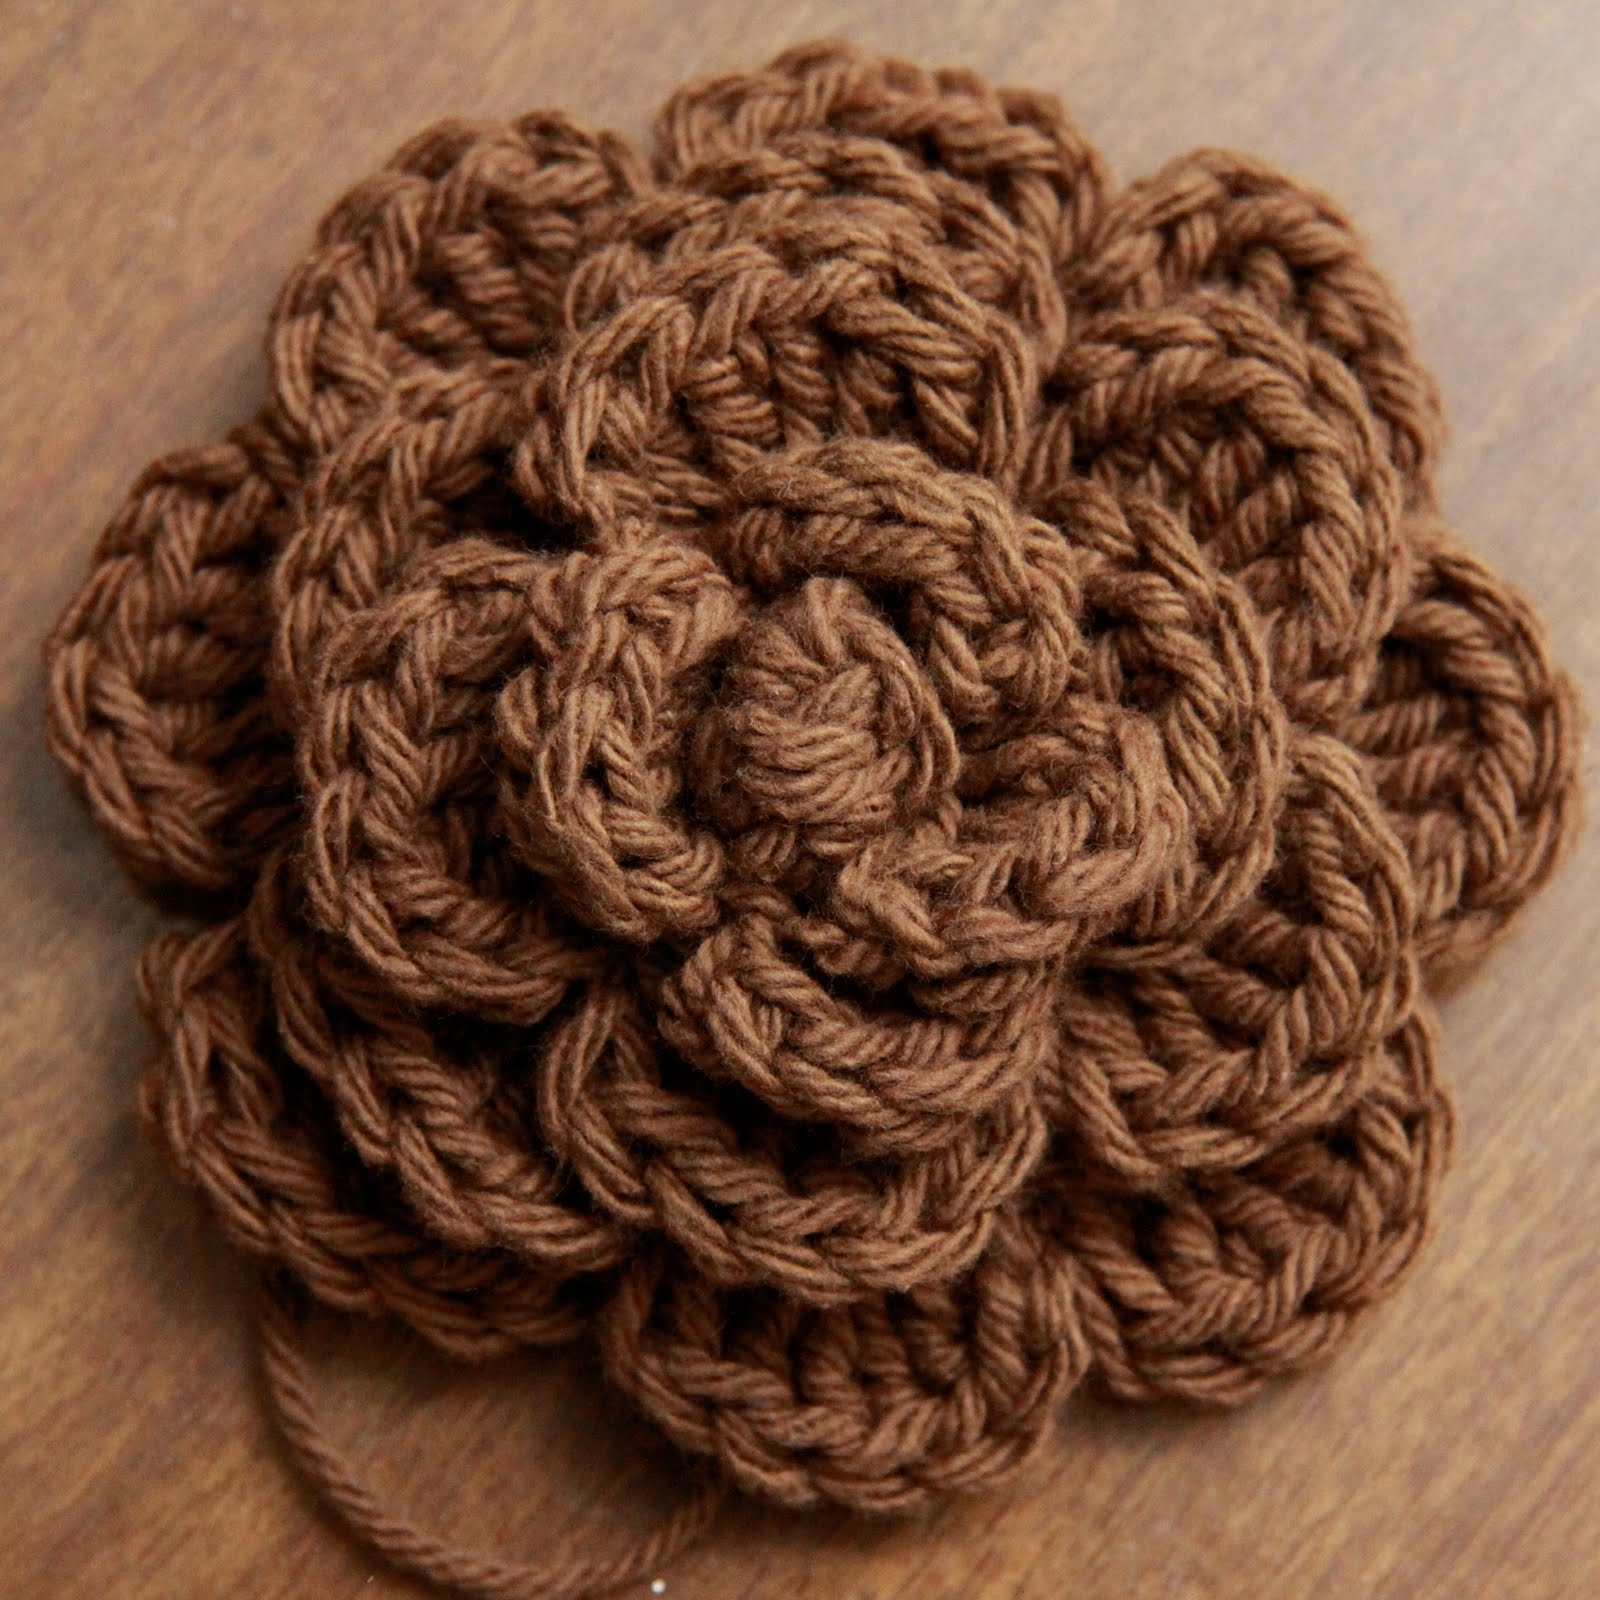 Crochet Hair Jewelry : Crazy 4 Crafting: Crochet Hair Accessories